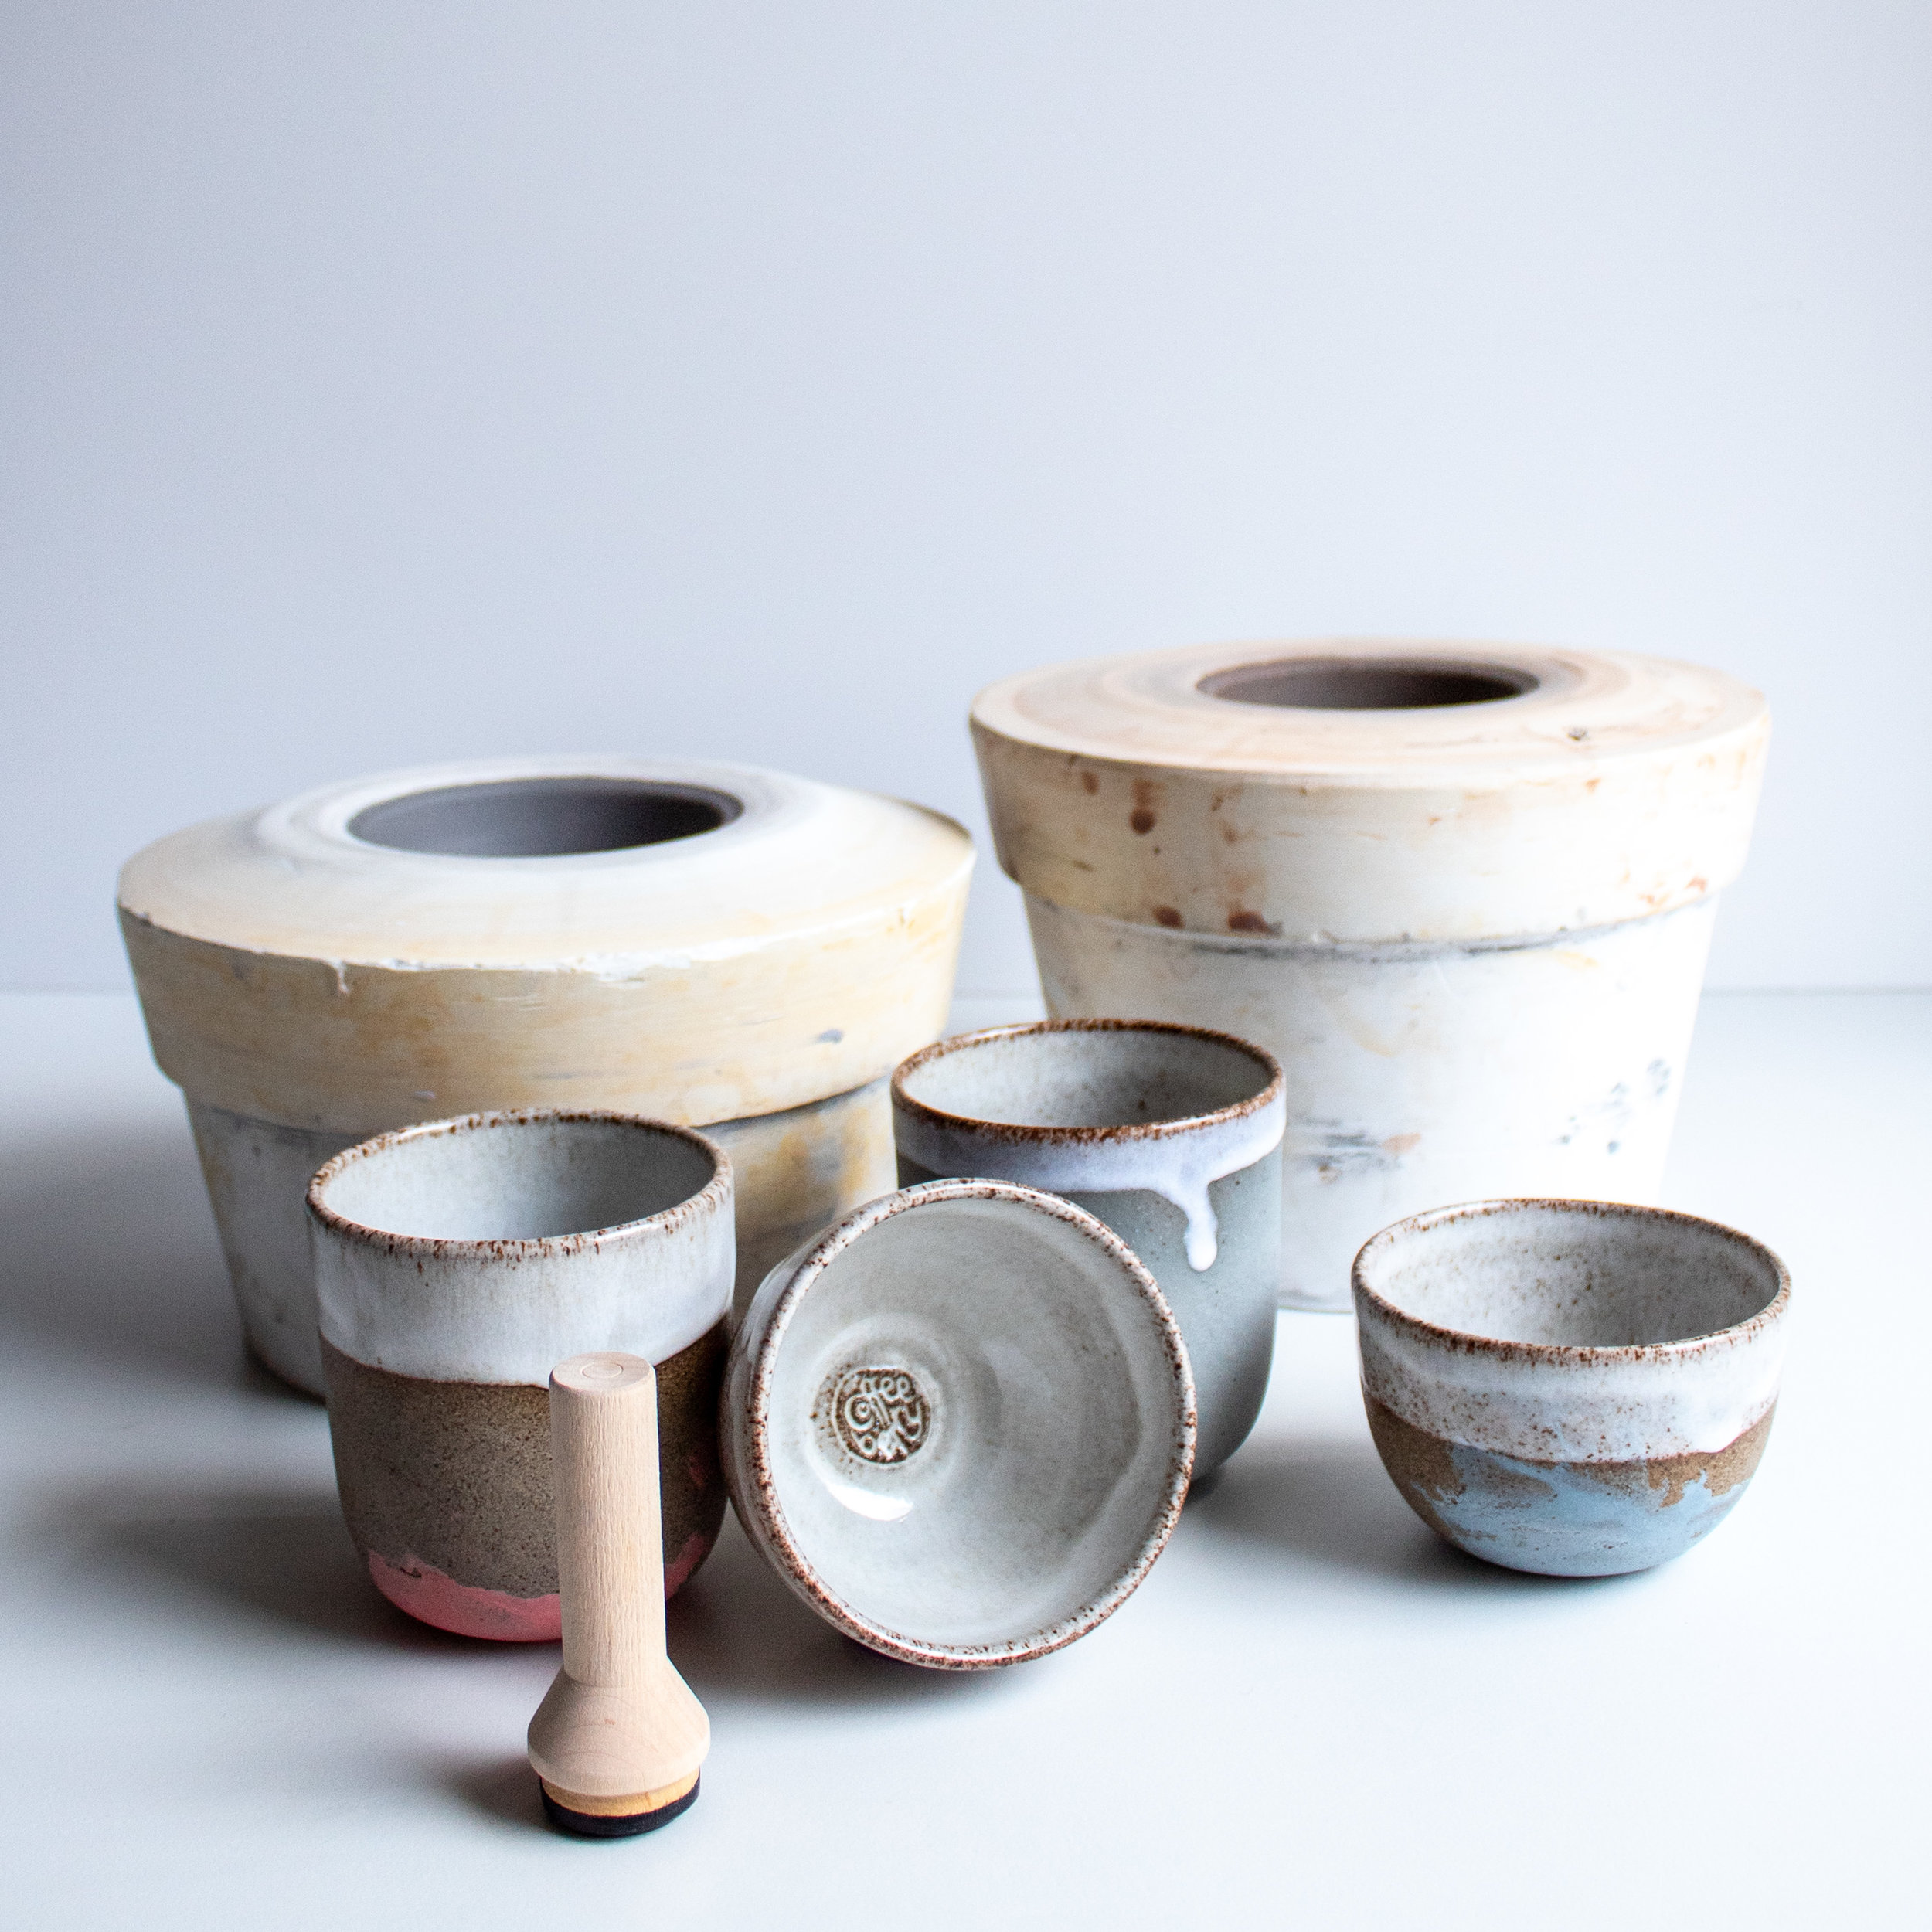 The plaster moulds in the background are used for making the cups.